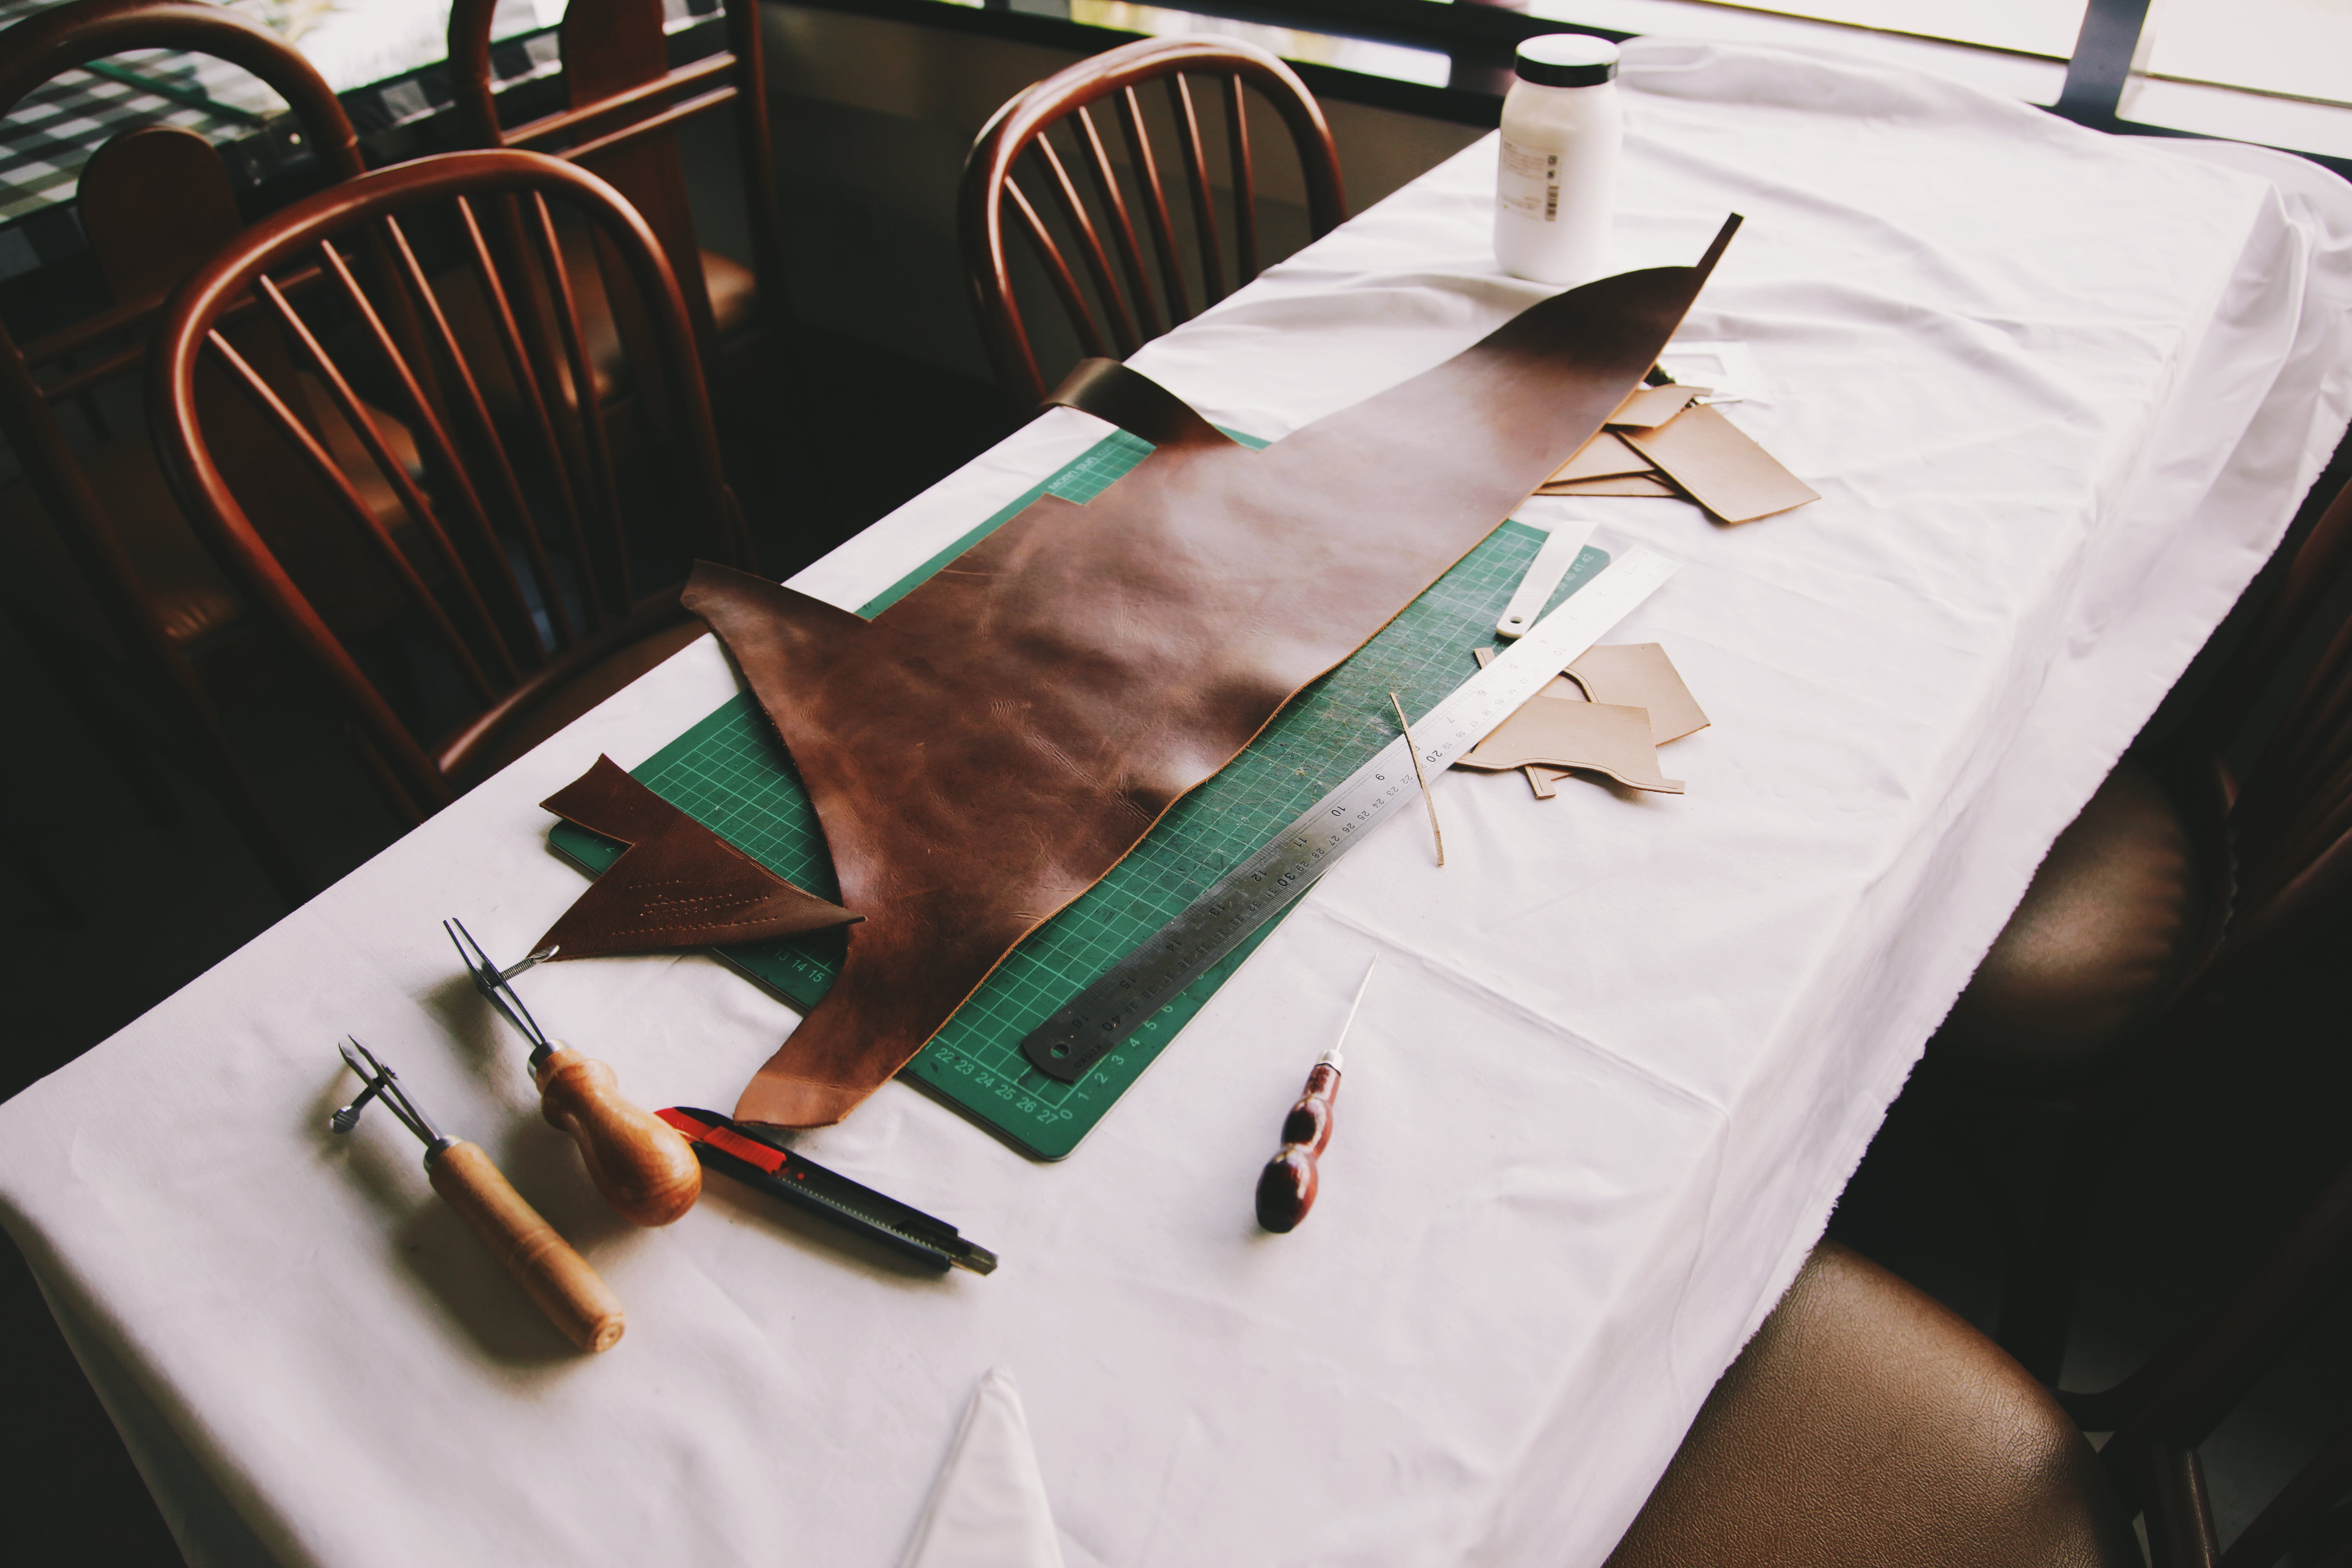 Brown Leather Textile on Top of Drafting Board